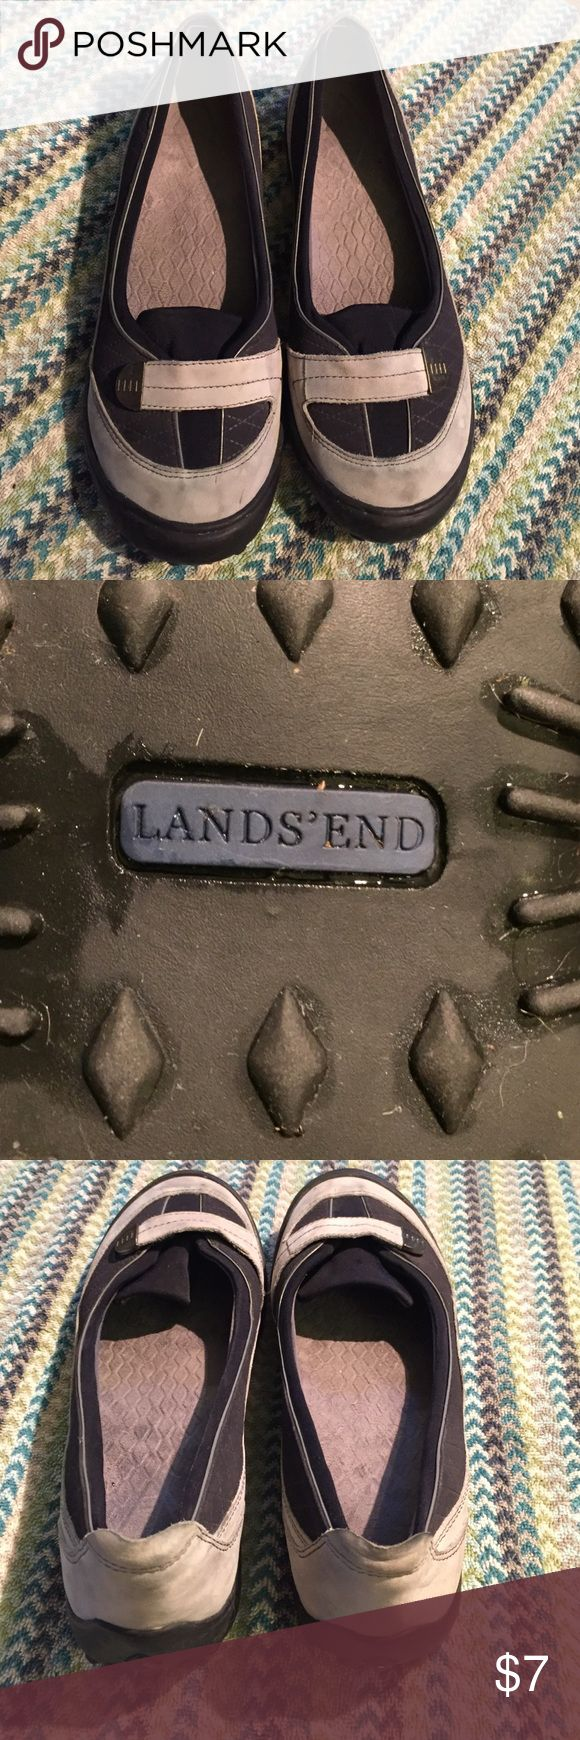 Lands End Shoes Navy clubs and light blue/gray slide on shoes. These have only been one once or twice. Brewer are some darkish spots one the toes, they were like this when I purchased so I'm honestly not sure if it how they look or if it happened at the store. Lands' End Shoes Sneakers